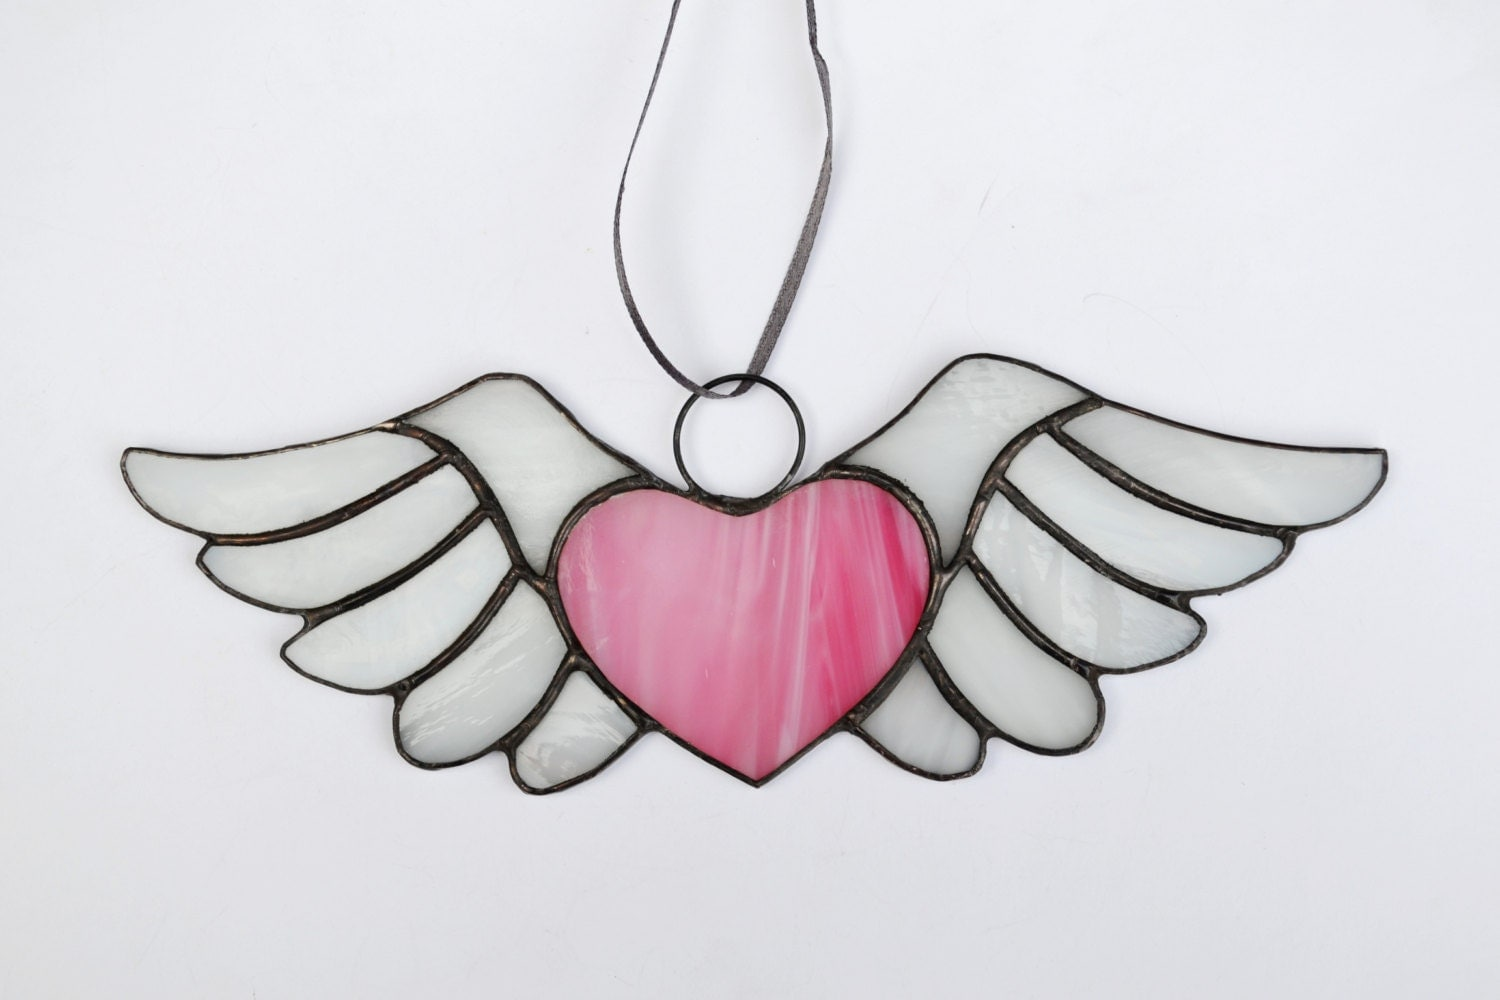 Heart with wings Pink winged glass Stained glass heart - photo#14